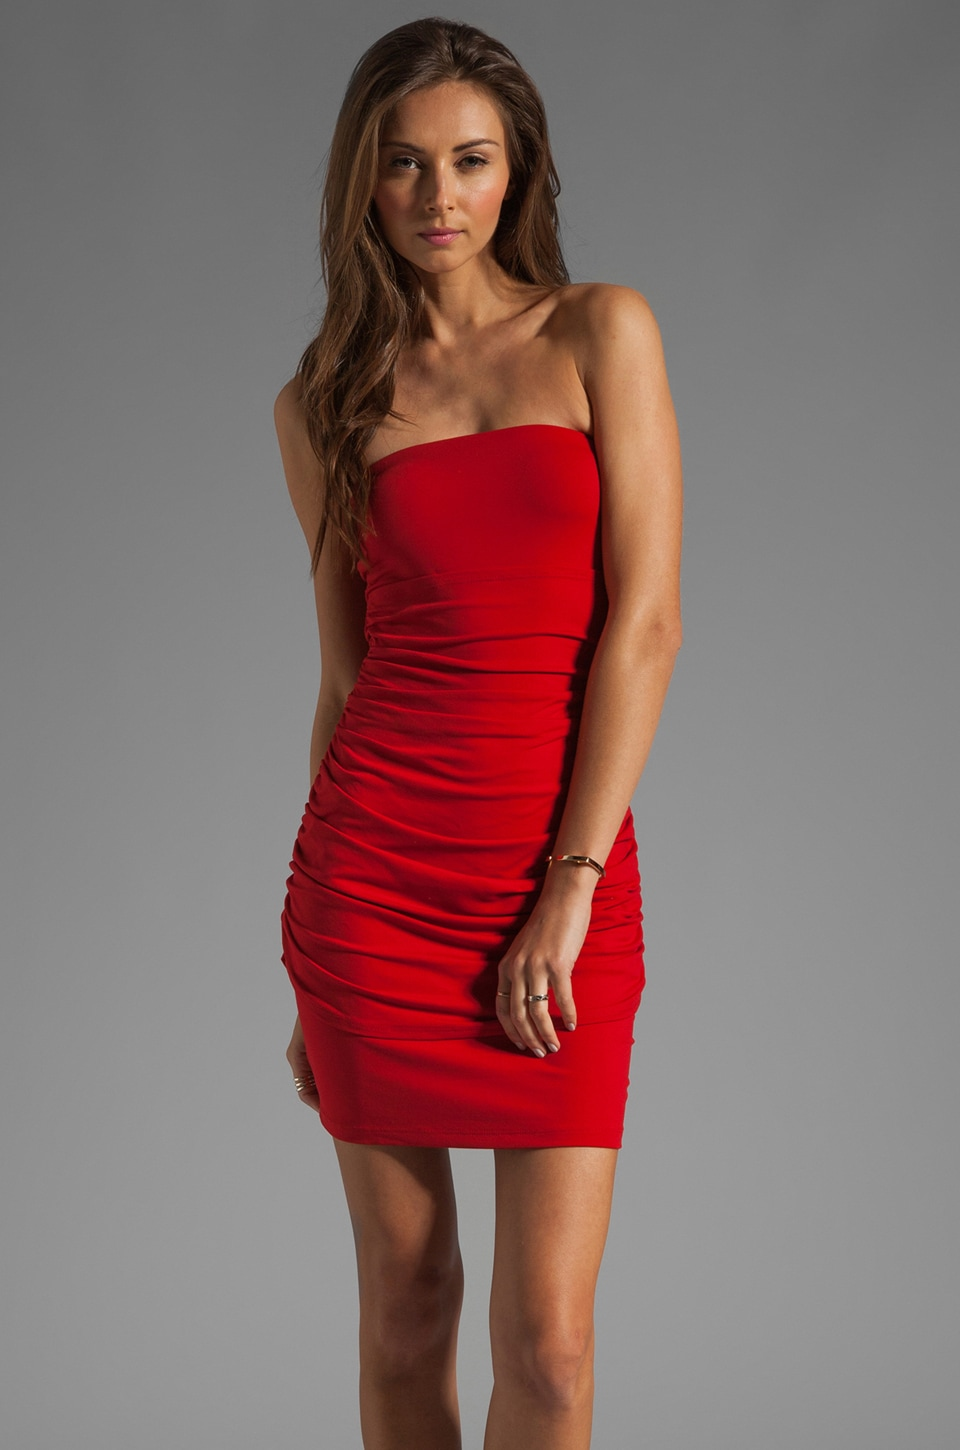 Susana Monaco Light Supplex Theo Strapless Dress in Pepper